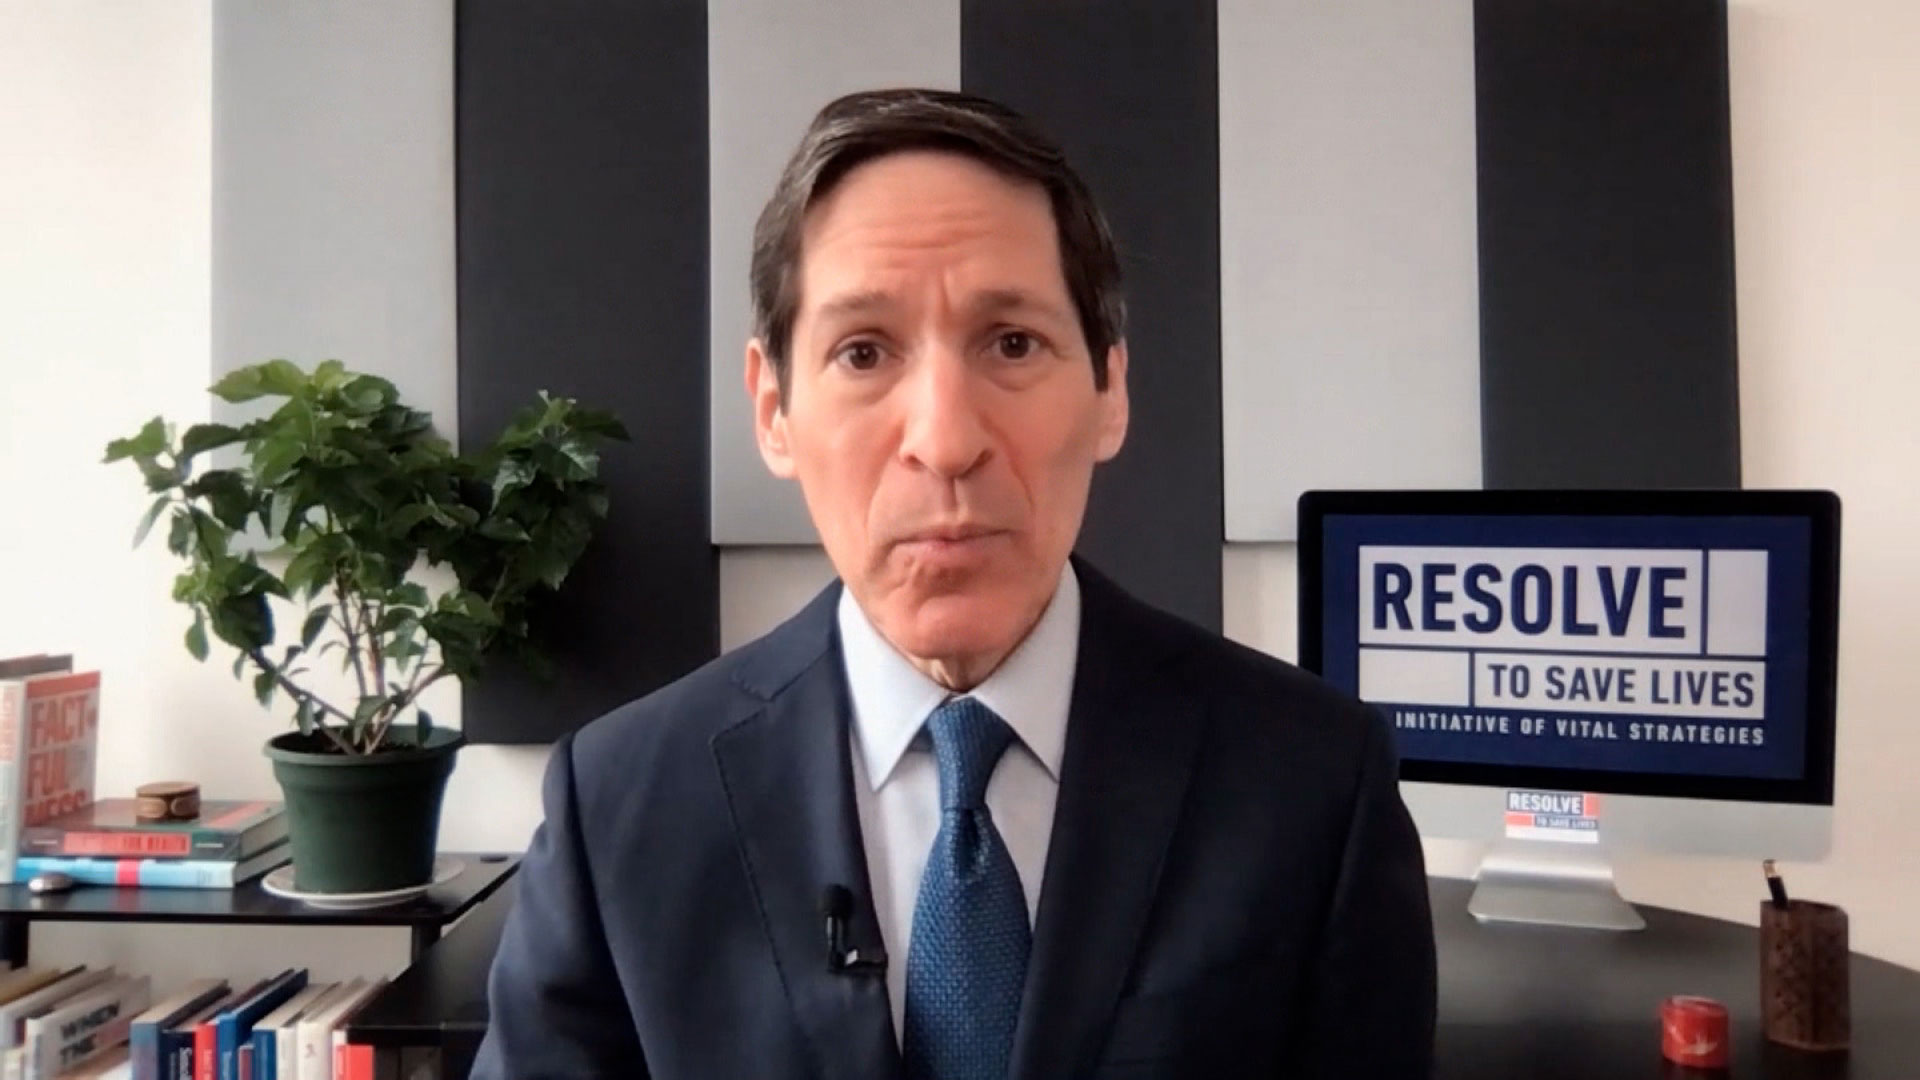 Dr. Tom Frieden on February 14.